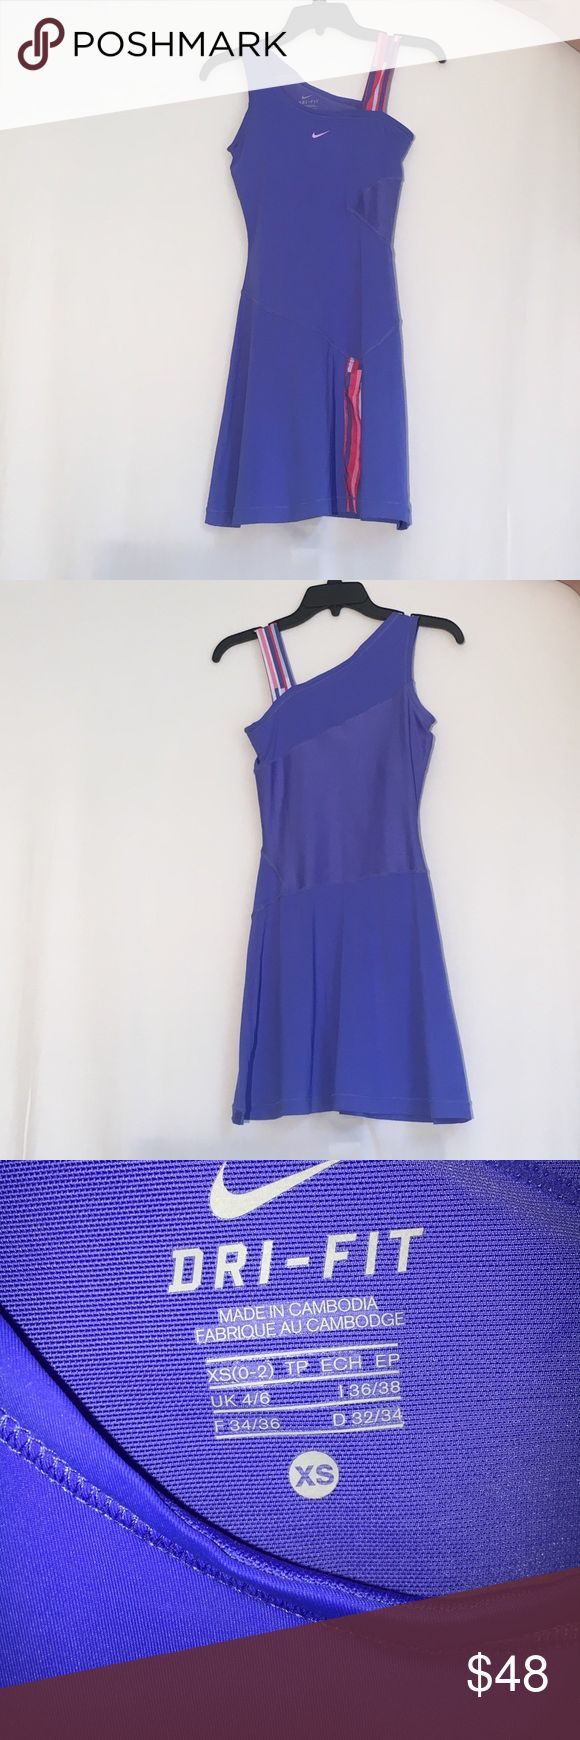 Women's Nike Tennis Outfit Women's size XS Nike Tennis Outfit, in excellent condition with no signs of wear or tear. If you have any questions or concerns feel free to ask! Nike Other